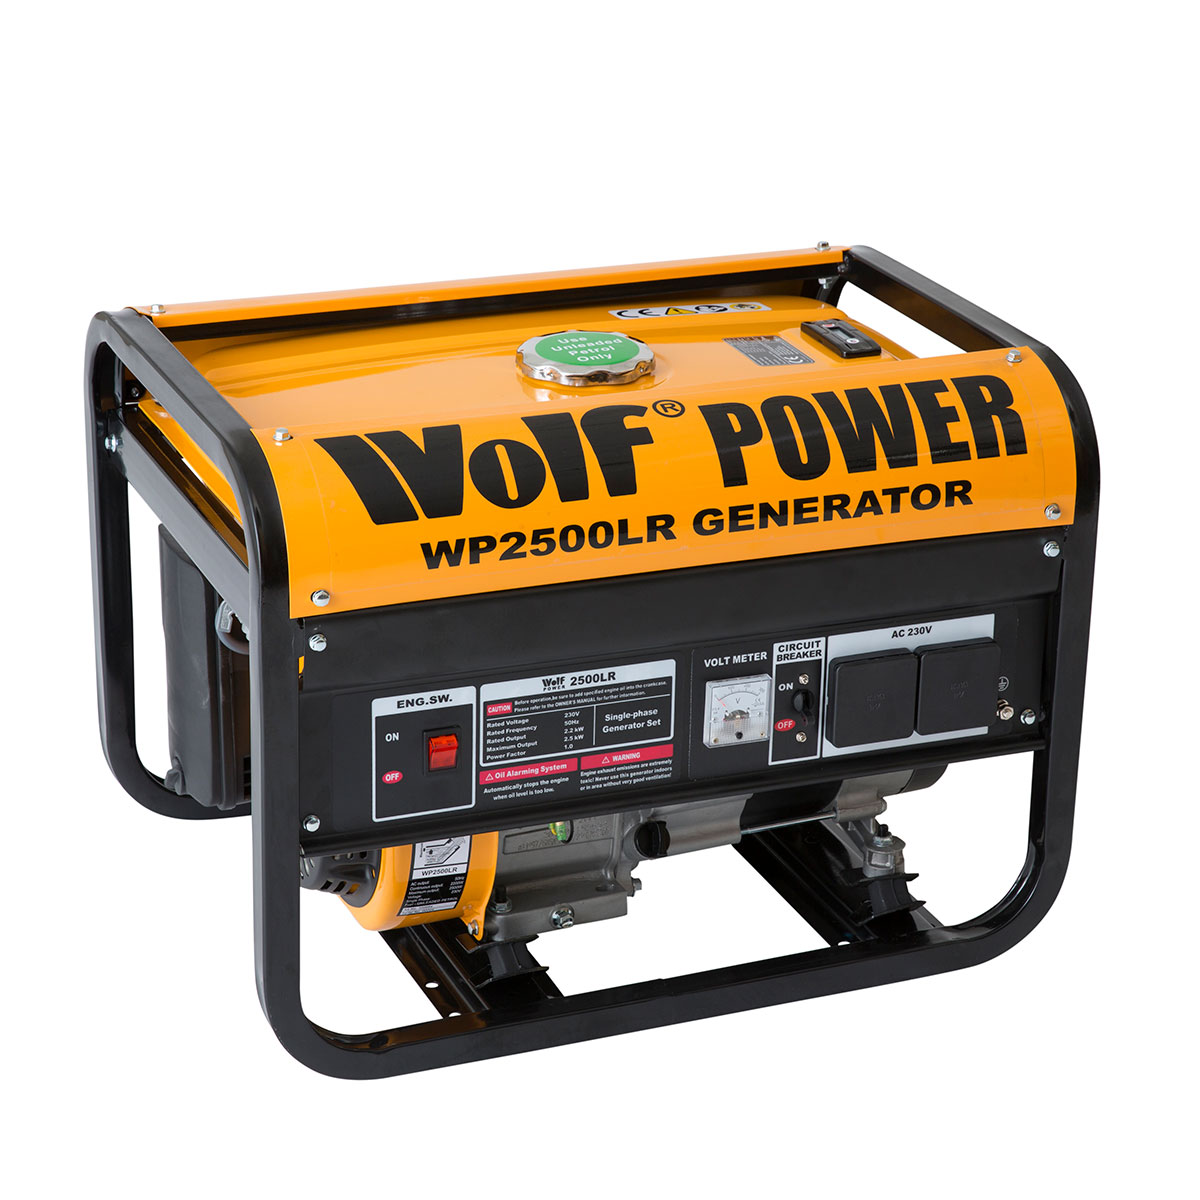 wolf 2500w petrol generator with 2 x 240v sockets ukhs tv tools to go rh ukhs tv Portable Generator Wiring Diagram Basic Engine Wiring Diagram Chevy